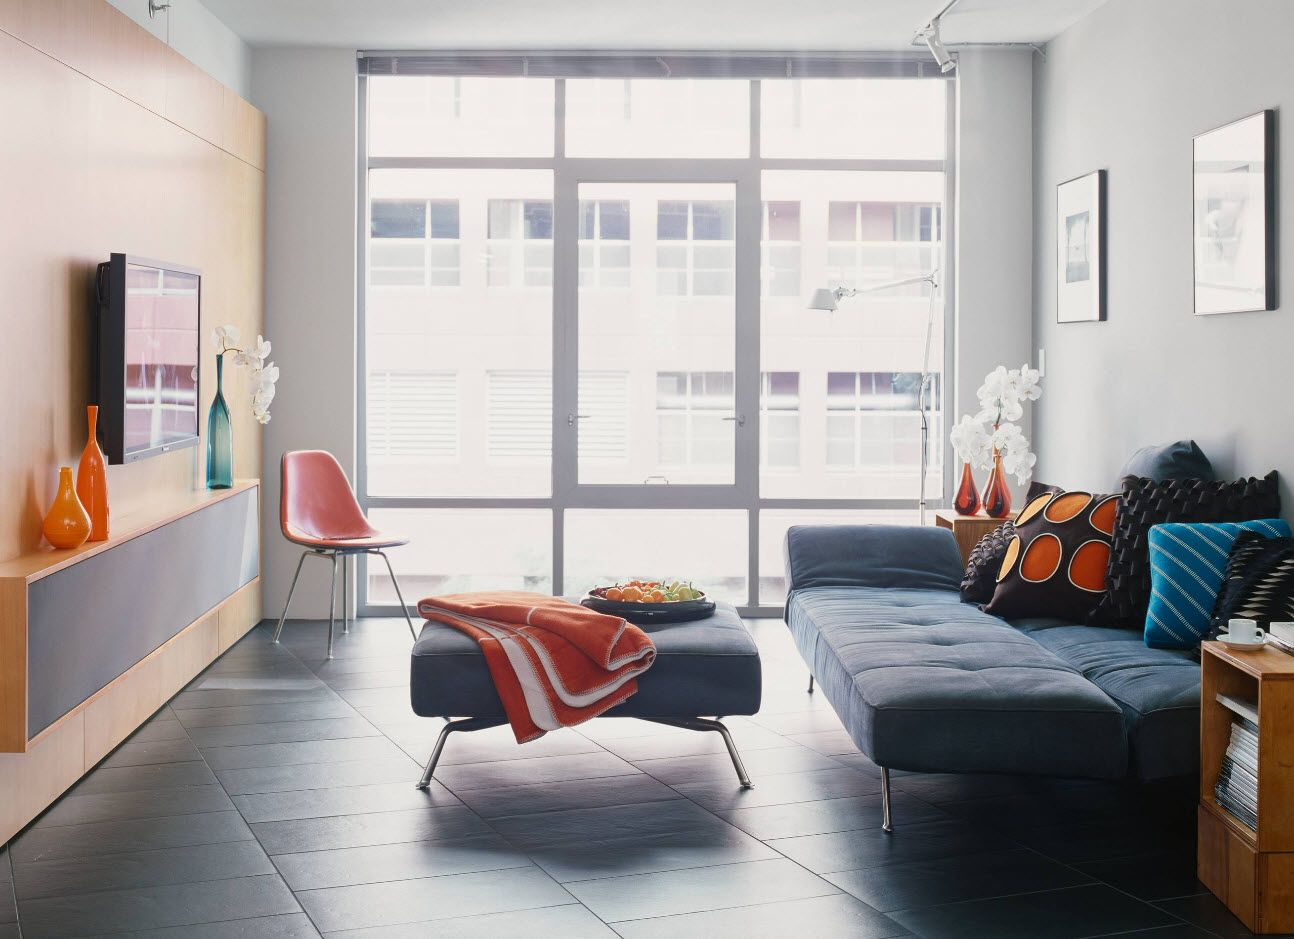 Nice gray colored space of the minimalistic living room